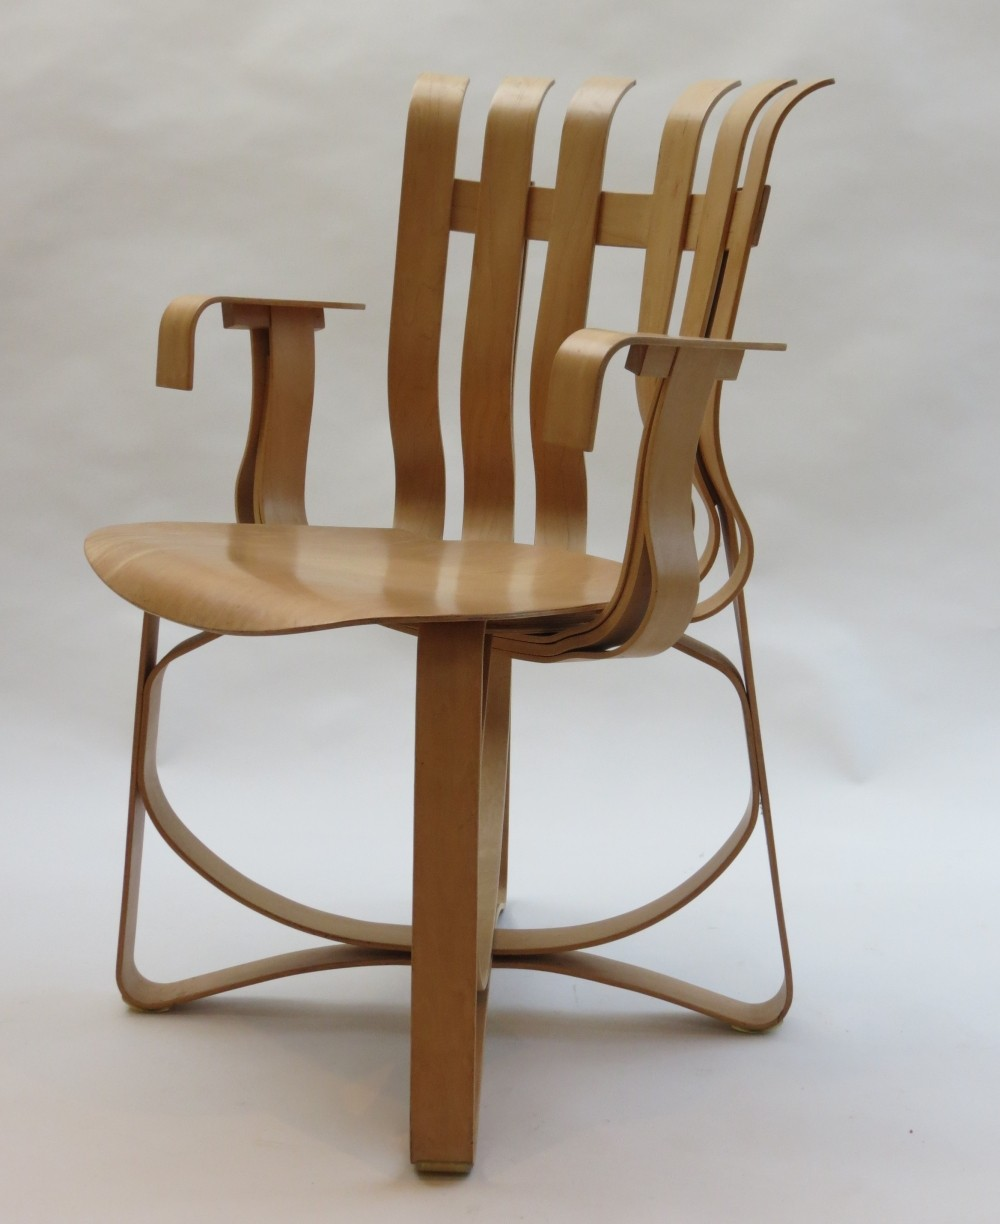 Hat Trick dining chair by Frank Gehry for Knoll, 1990s